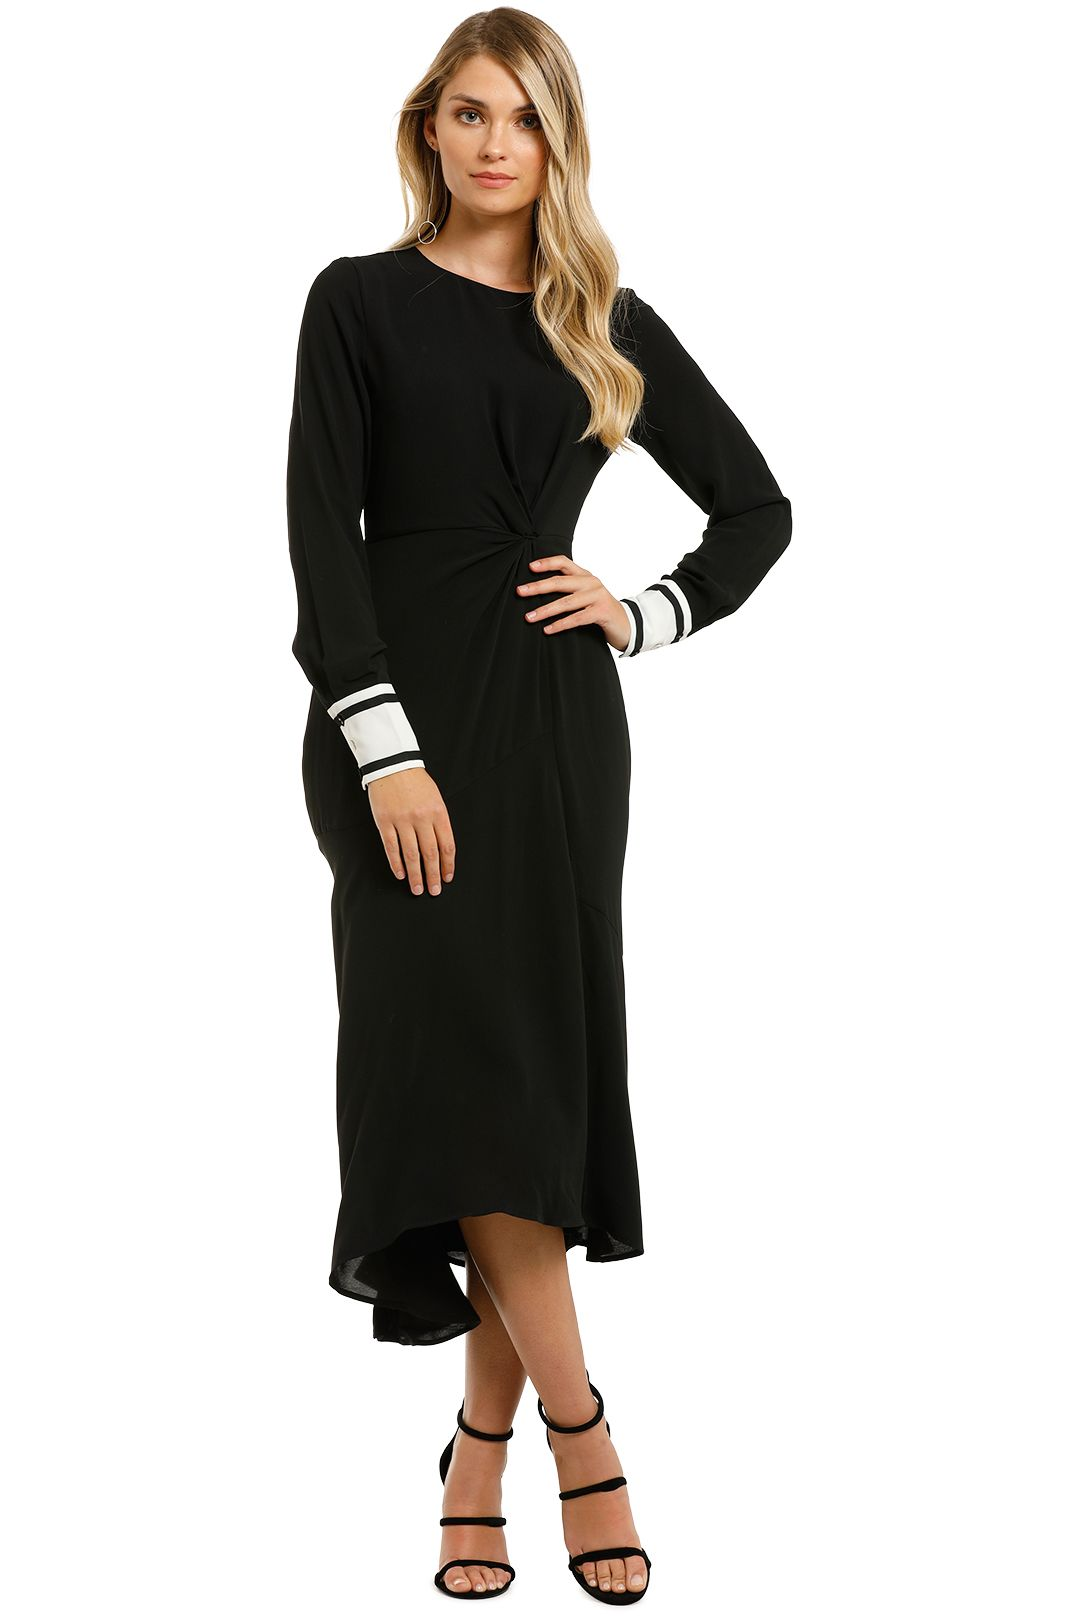 Sure-Thing-Dress-Black-White-Front